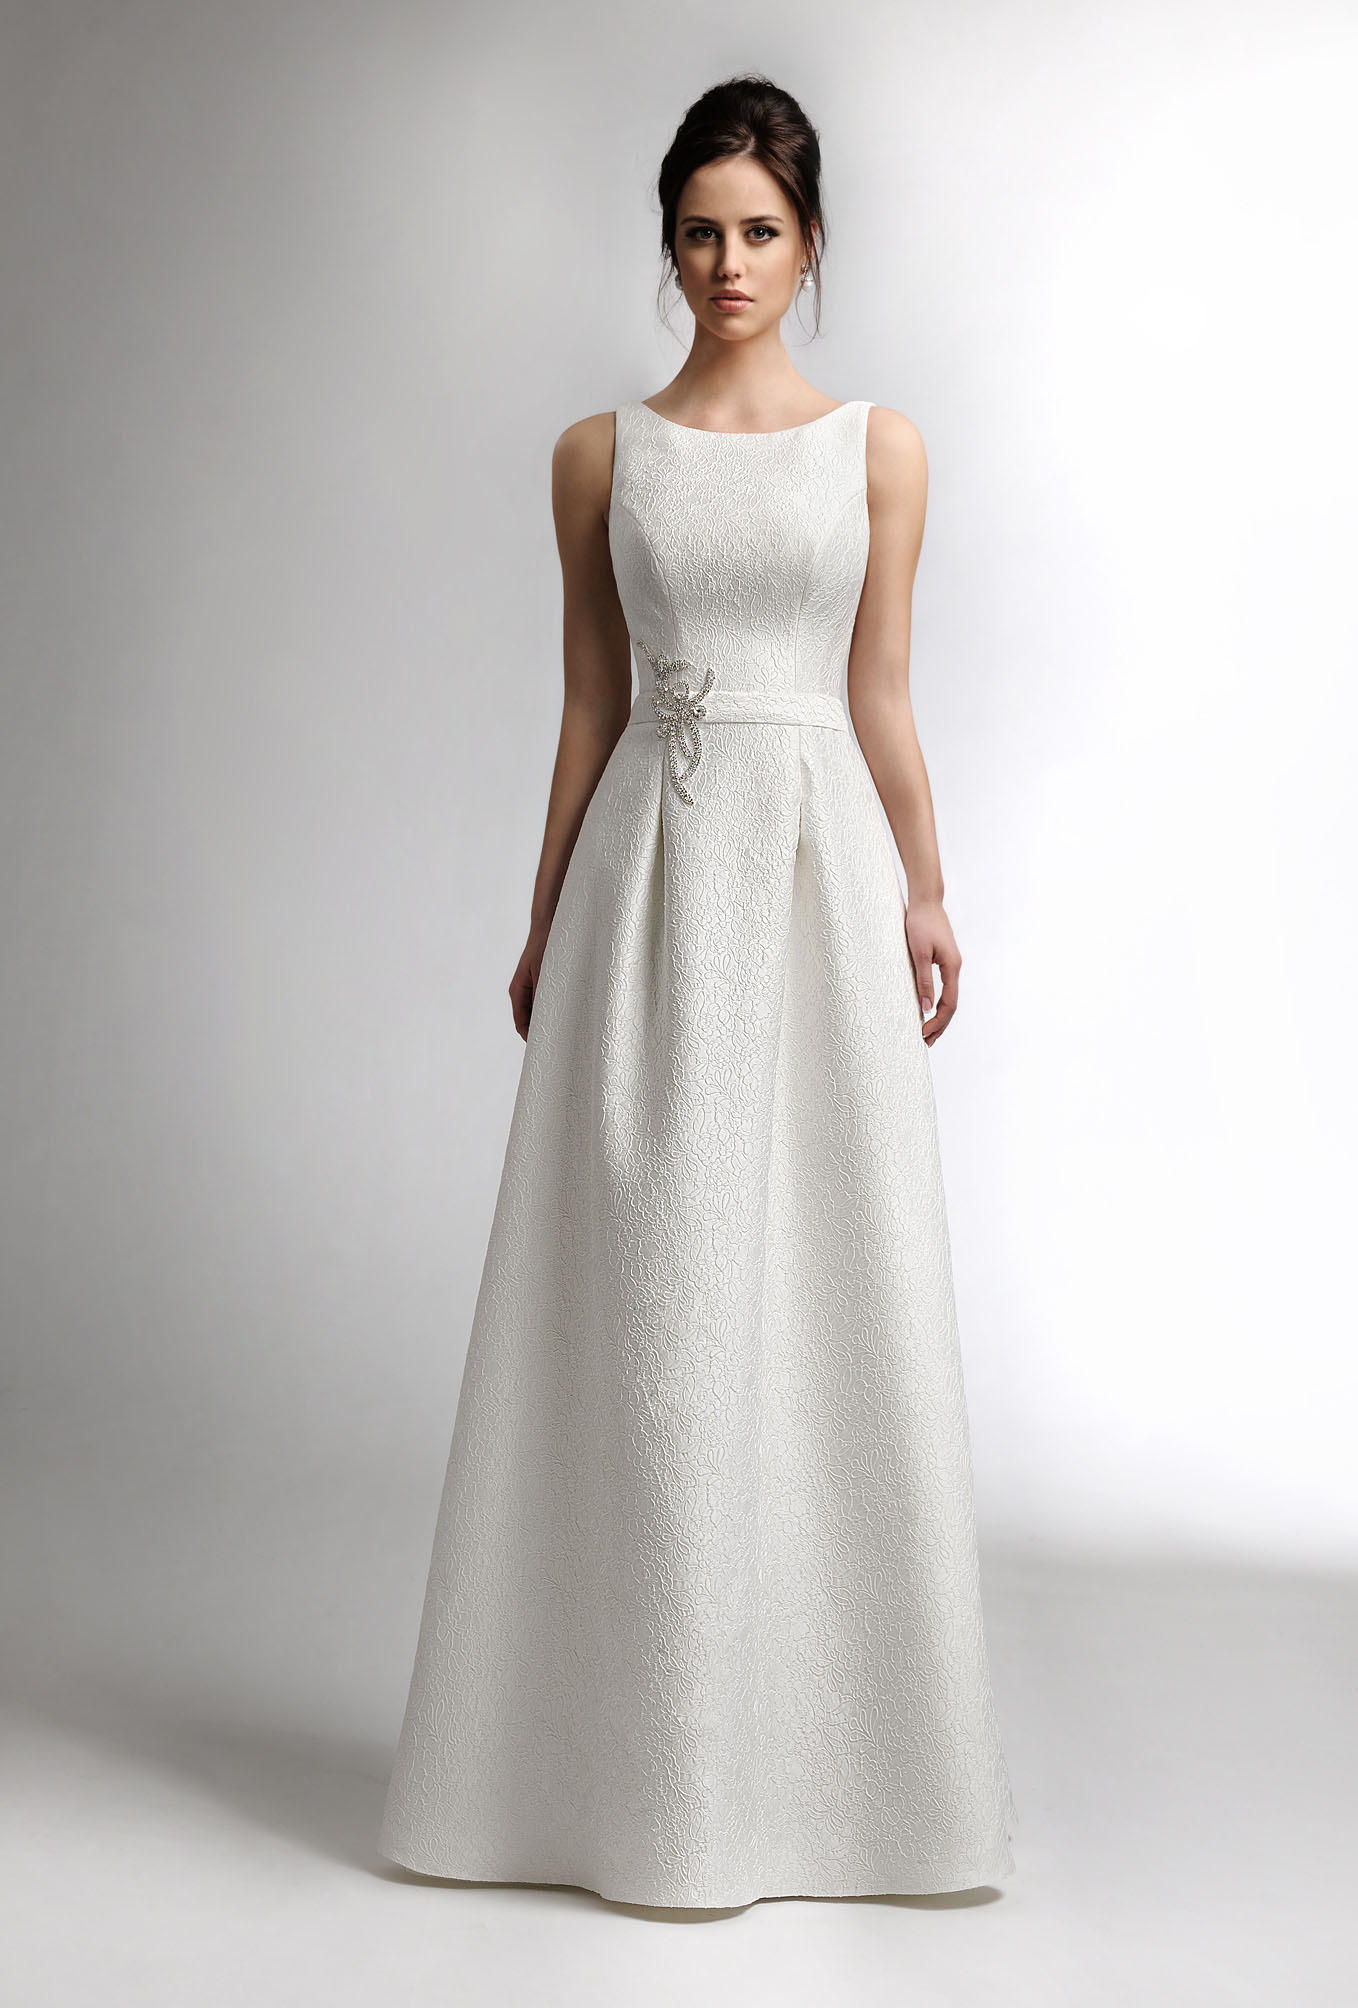 TO-495 - The One 2015 - Wedding dresses - Agnes - lace wedding dresses ...